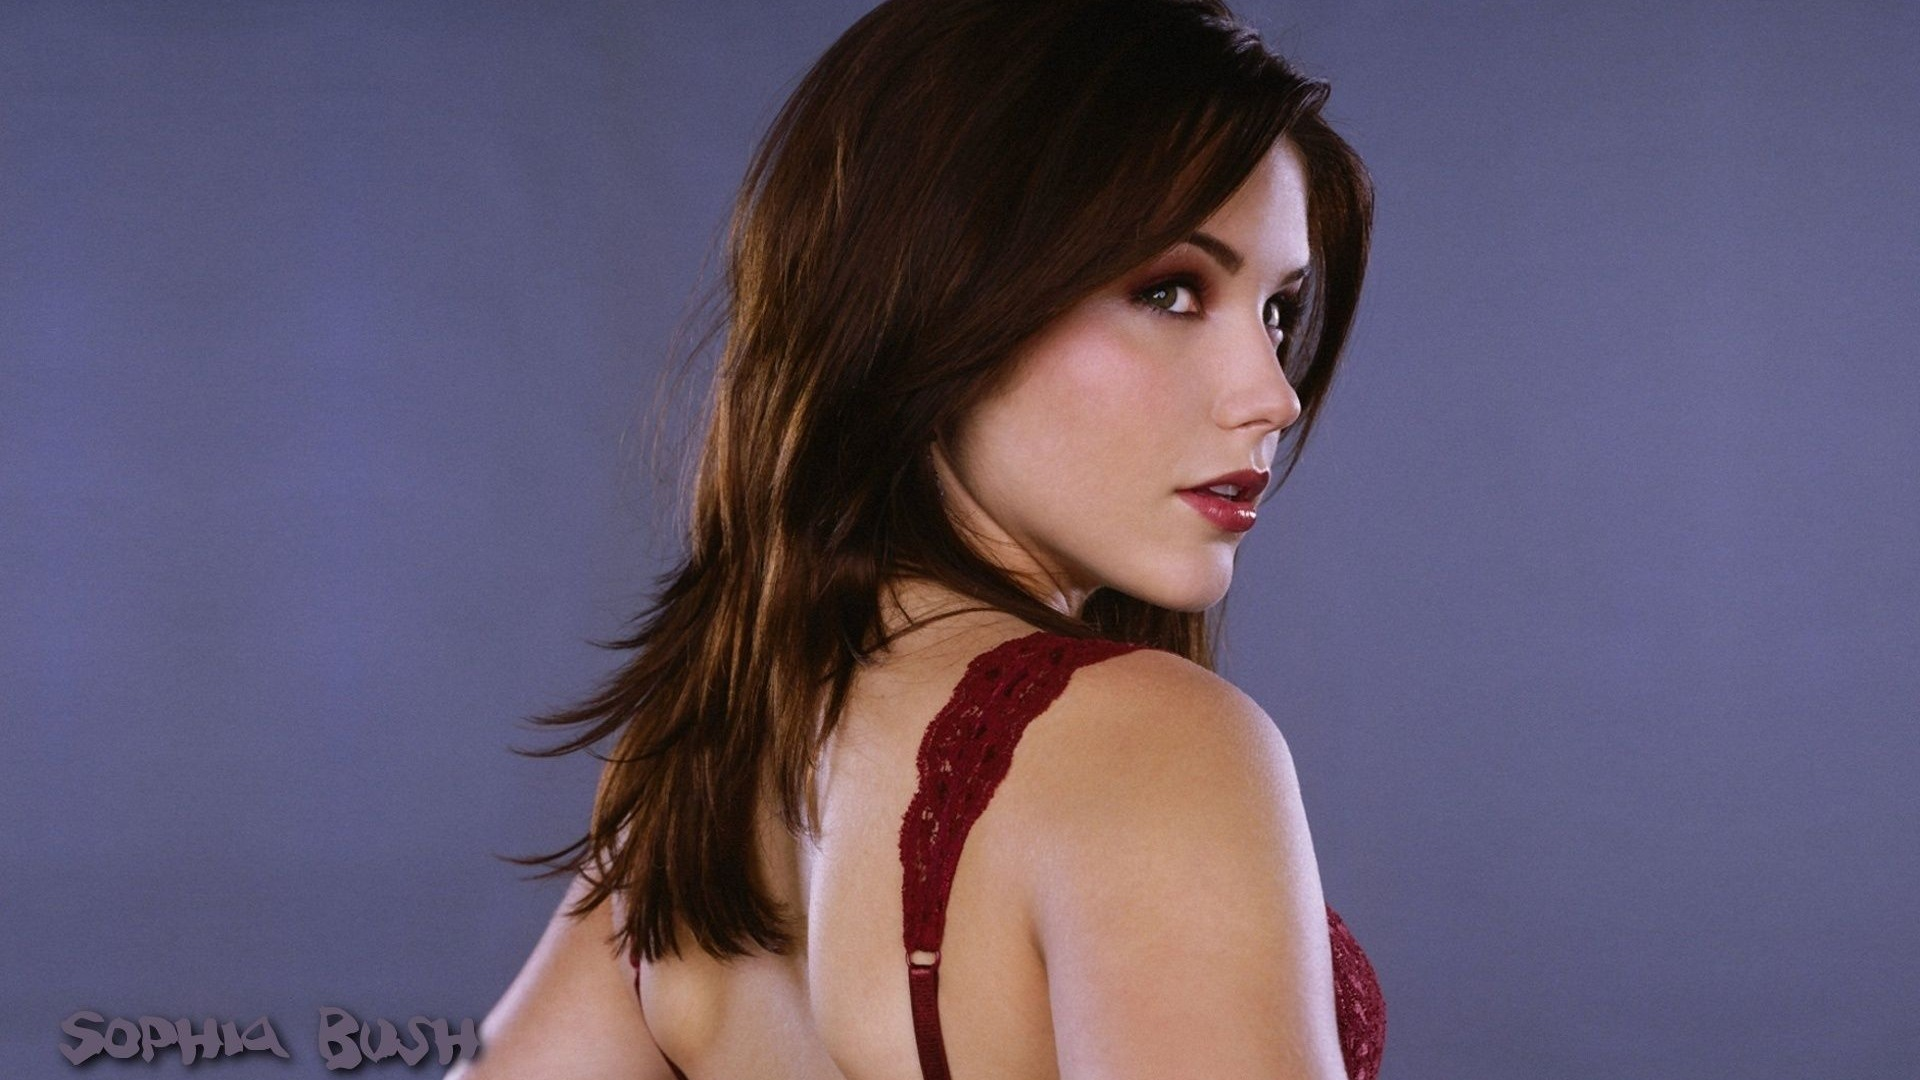 Sophia Bush #007 - 1920x1080 Wallpapers Pictures Photos Images